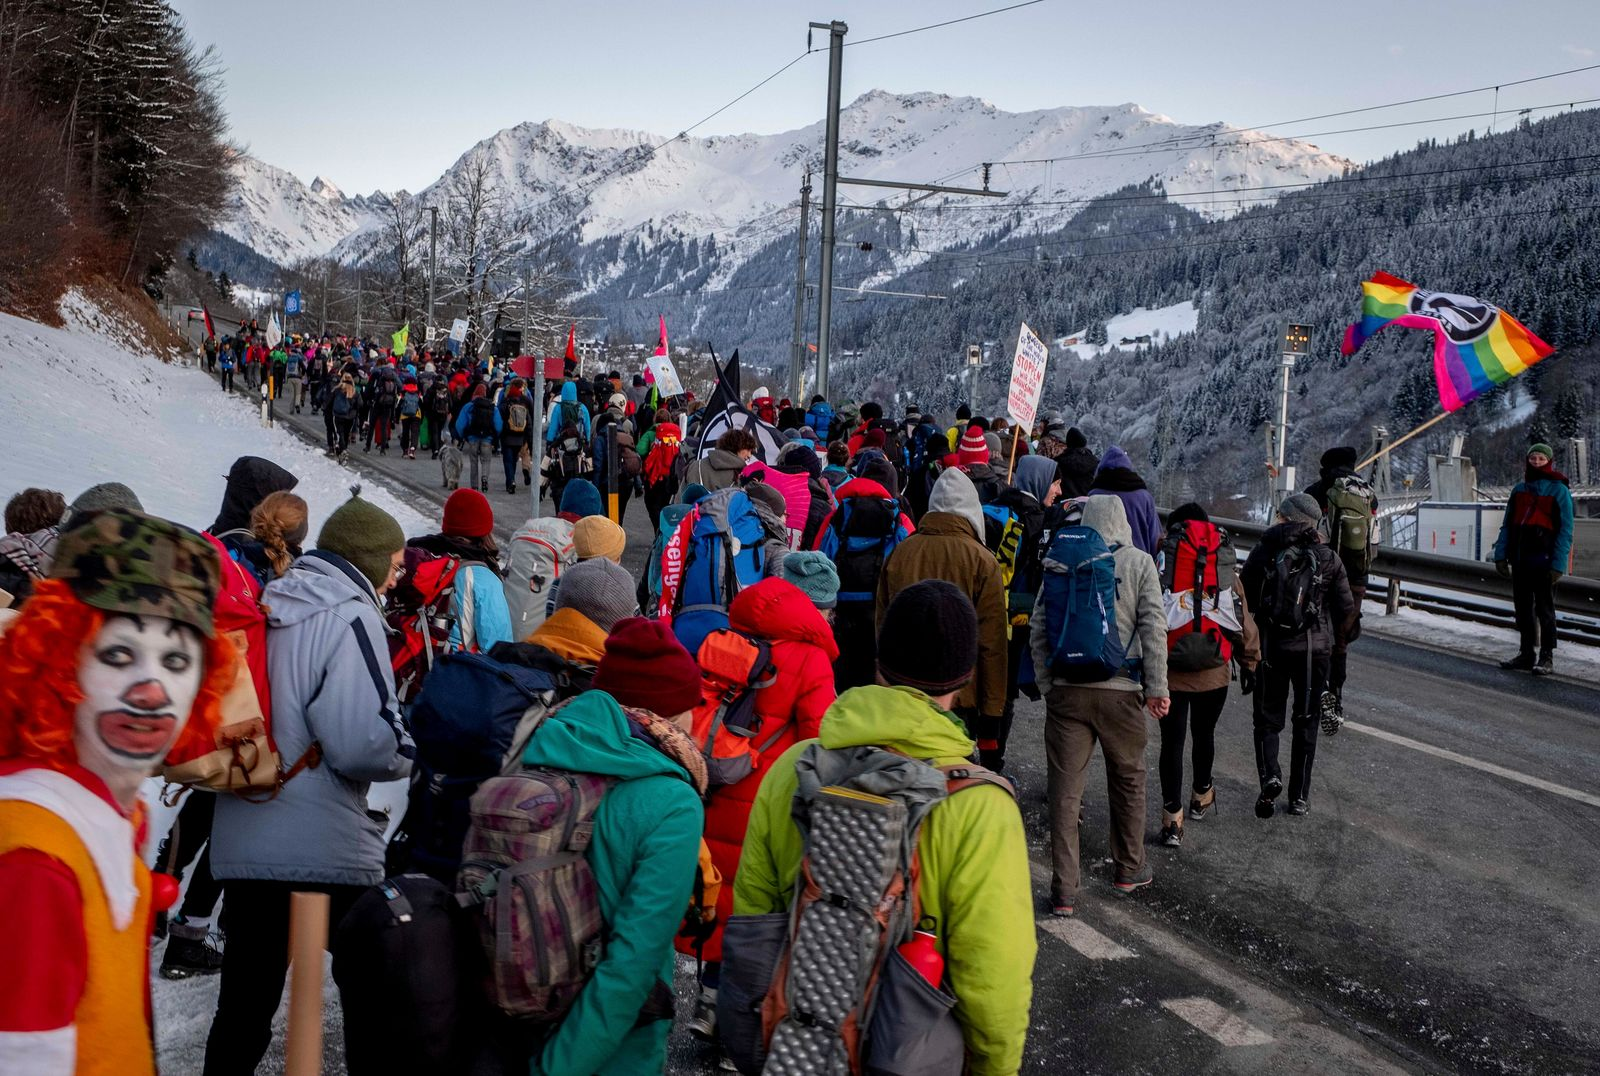 Hundreds of climate protesters who are on a three-day protest march from Landquart to Davos pass the city of Klosters, Switzerland, Monday, Jan. 20, 2020. The World Economic Forum will start on Tuesday. (AP Photo/Michael Probst)